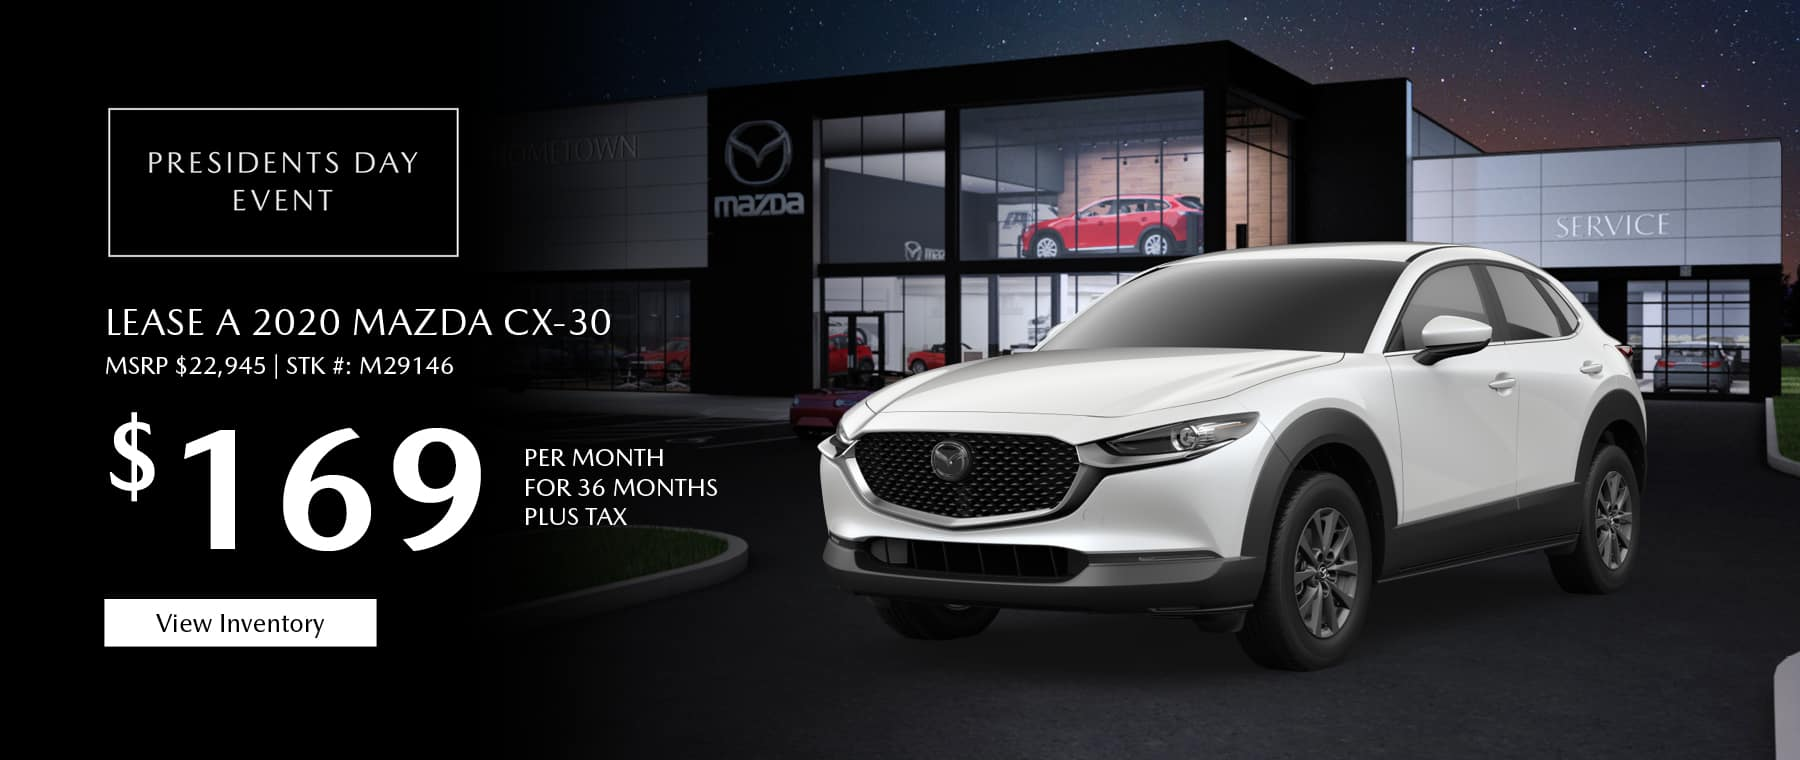 Lease the 2020 Mazda CX-30 for $169 per month, plus tax.